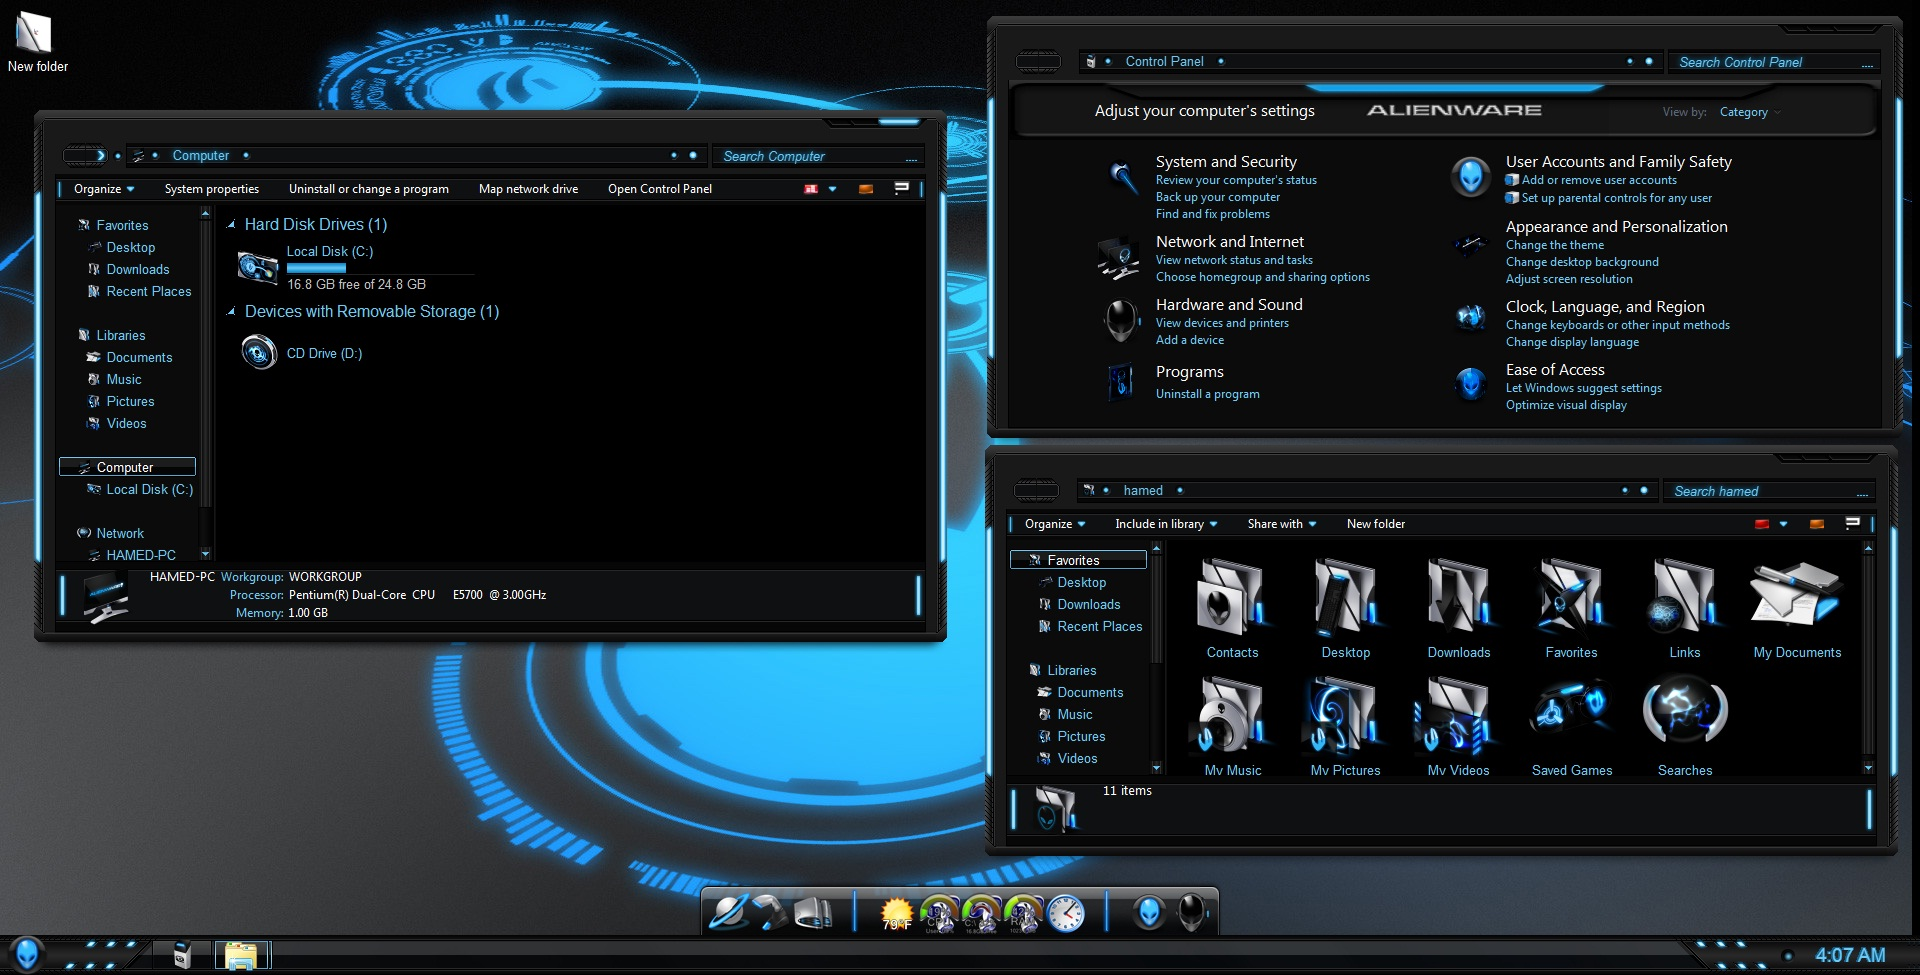 Download 5 alienware windows 7 themes and skins.